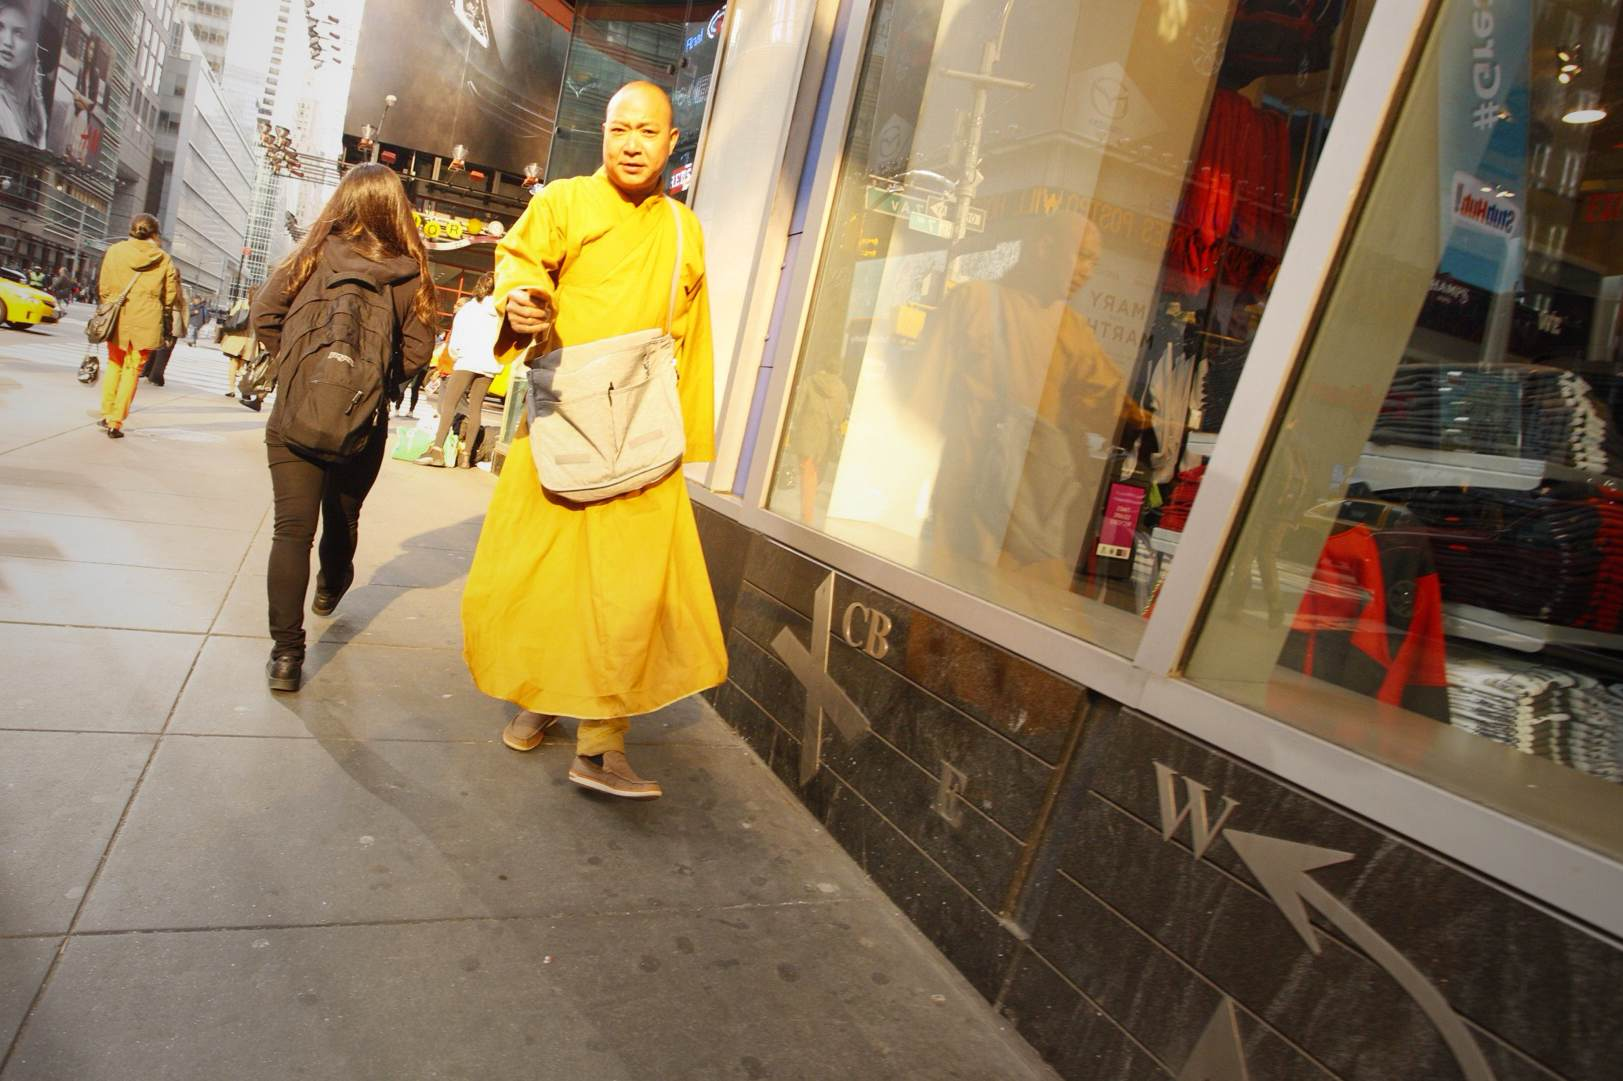 The warm glow of the early morning sun illuminates a Monk's robe near Times Square.